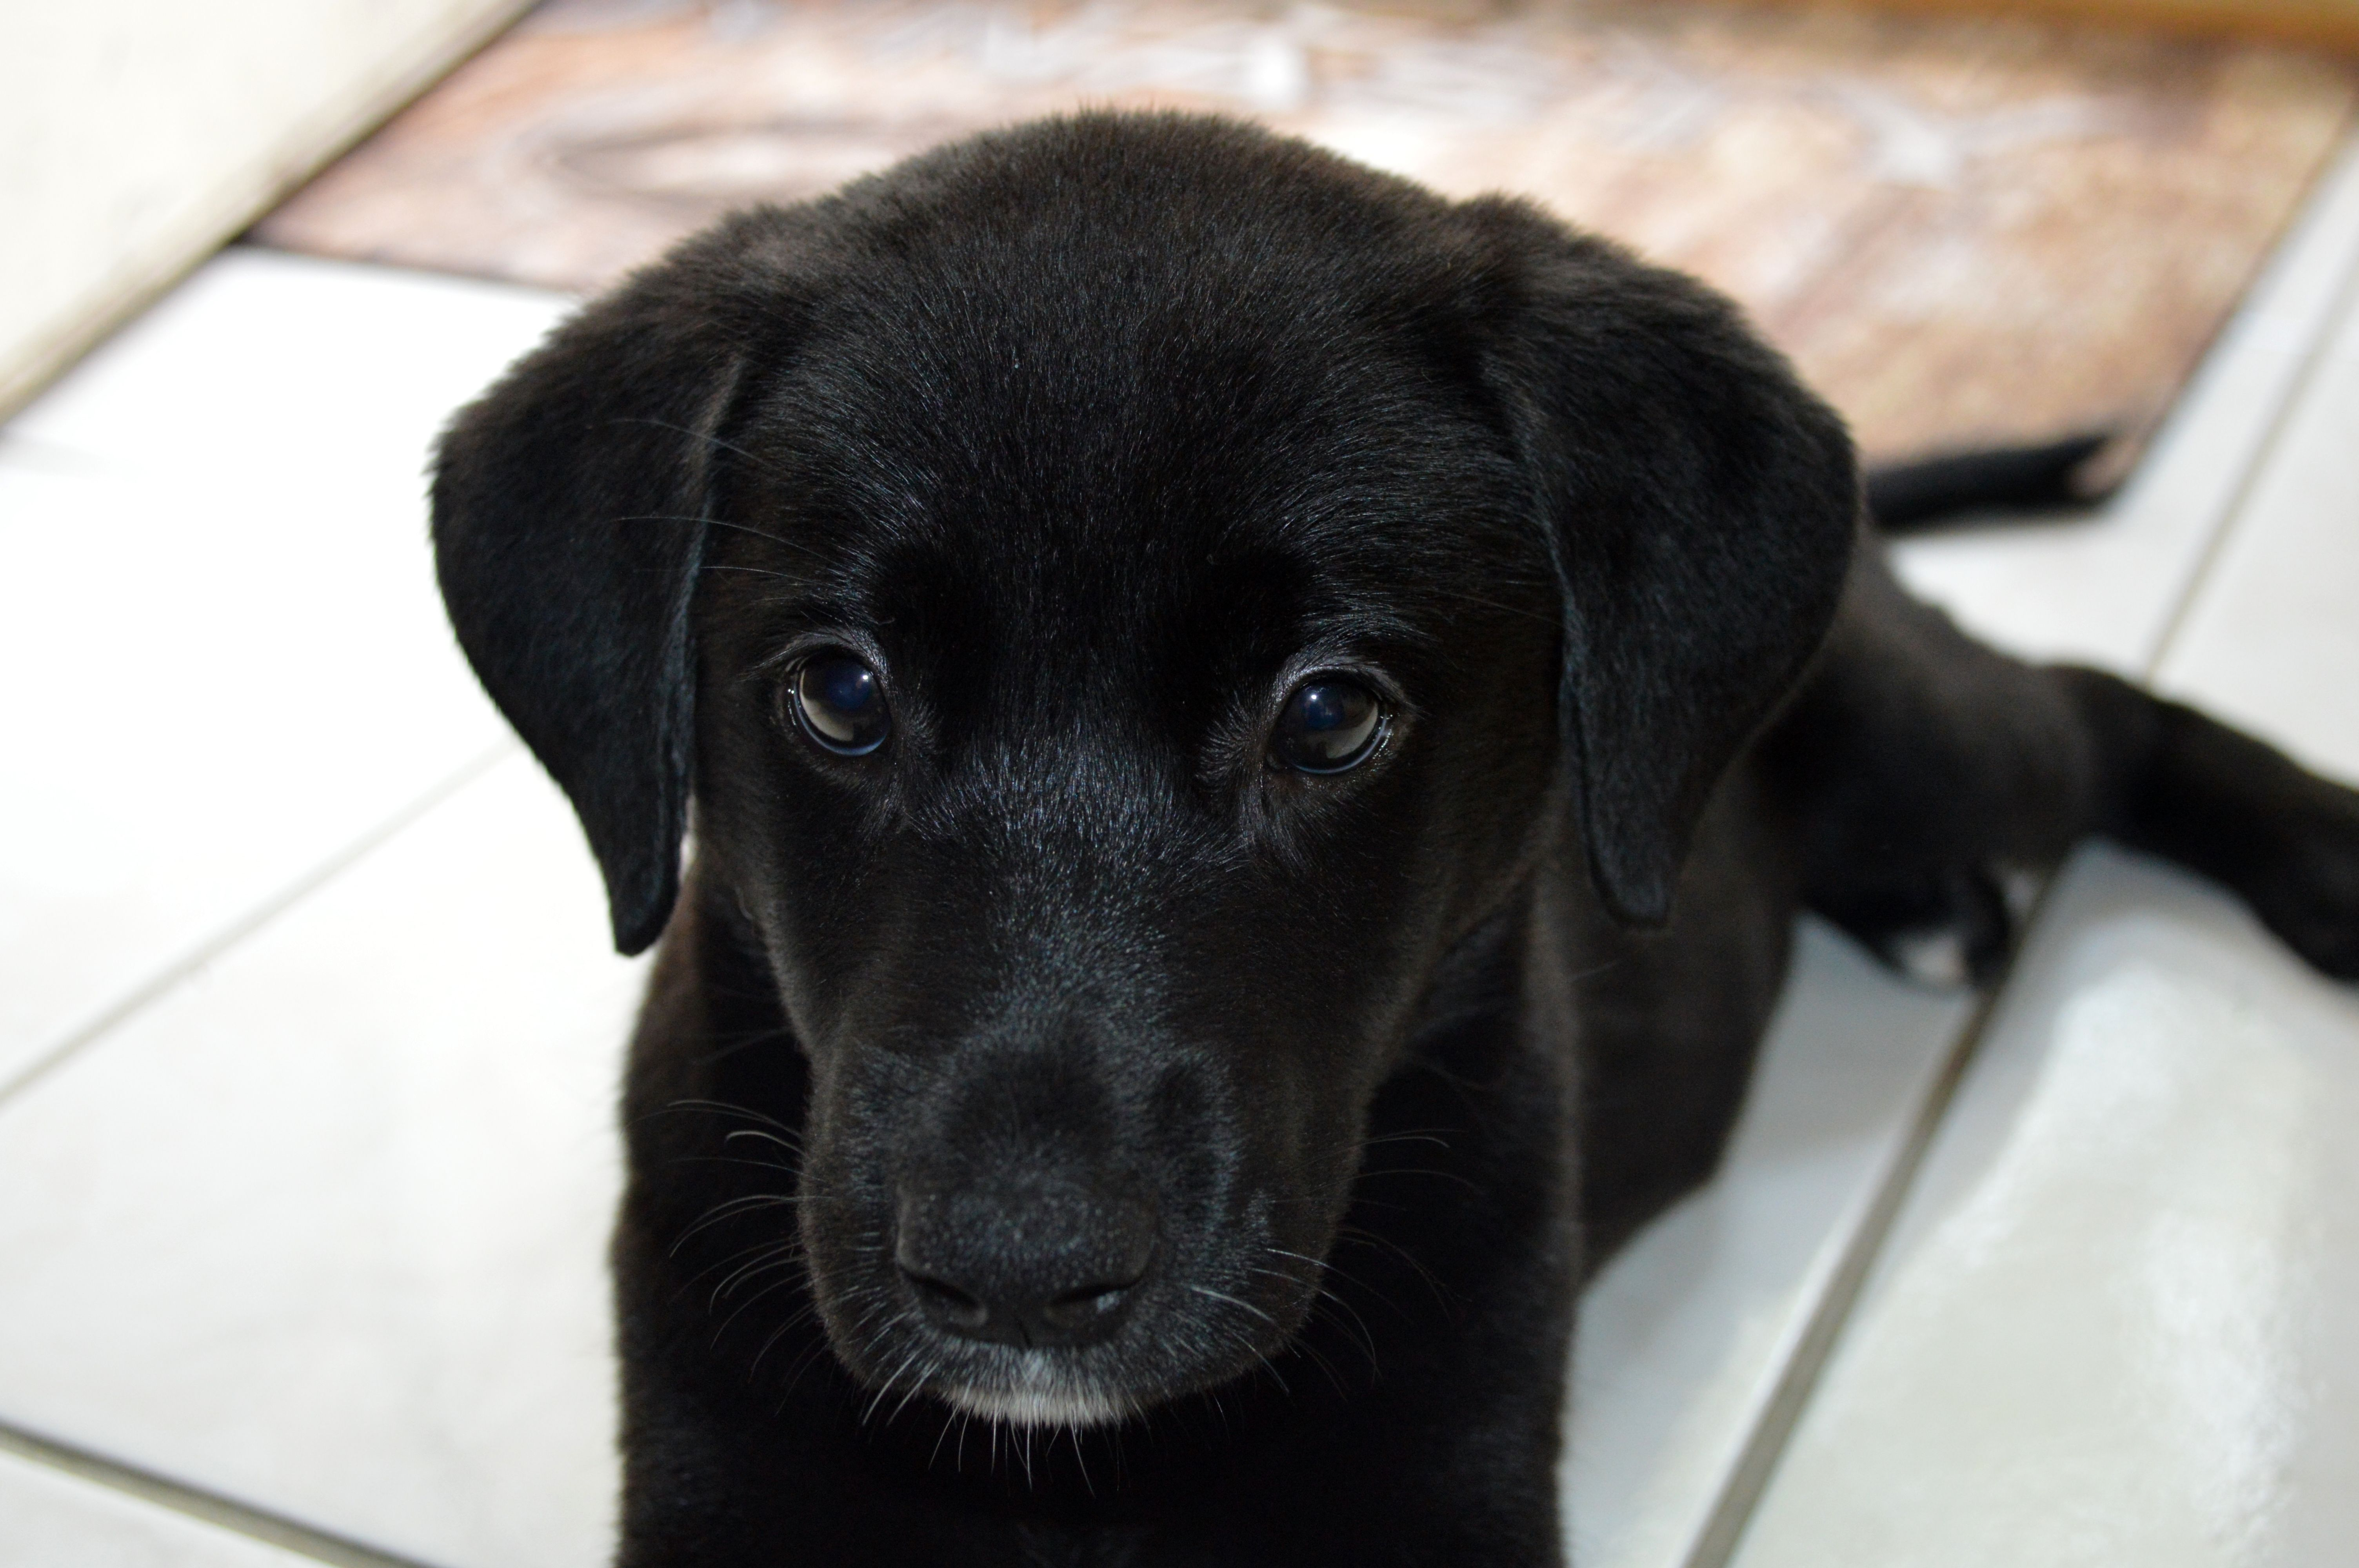 This Is My 11 Week Old German Shepherd Lab Mix Puppy Brandy Isn T She Adorable Lab Mix Puppies Puppies German Shepherd Lab Mix